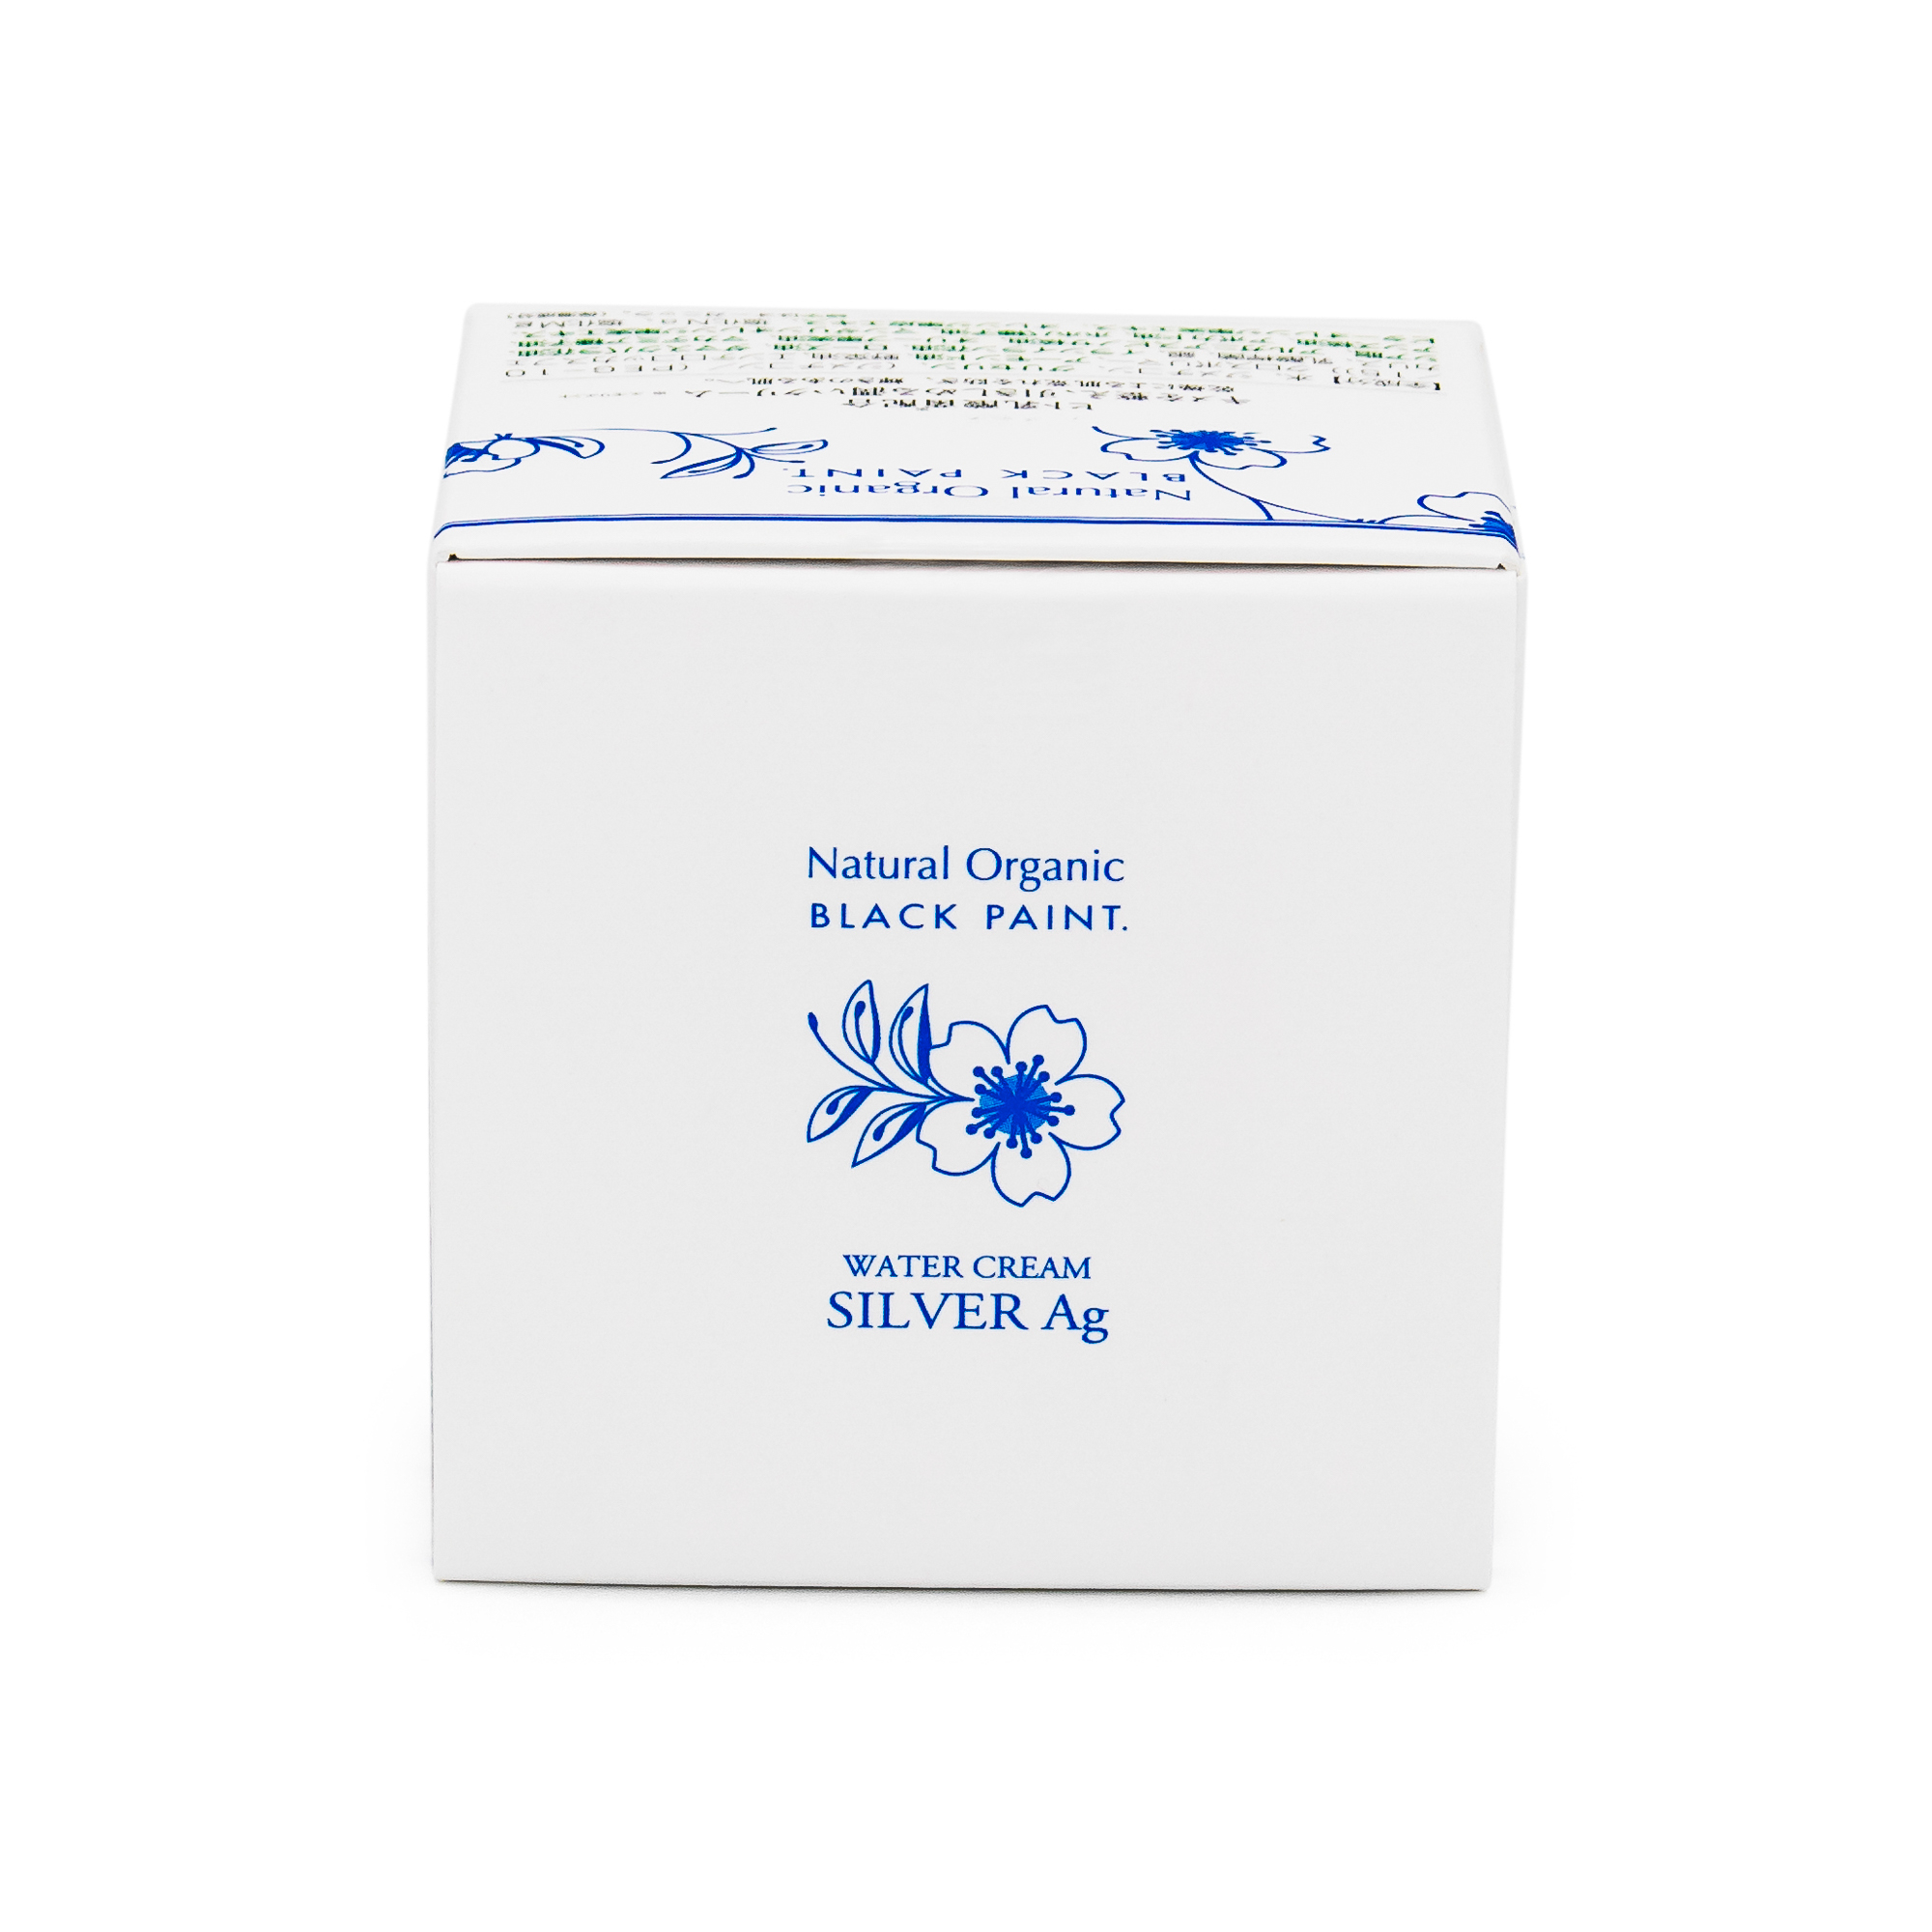 Water Cream Silver 25g with Human Microbiome - box top